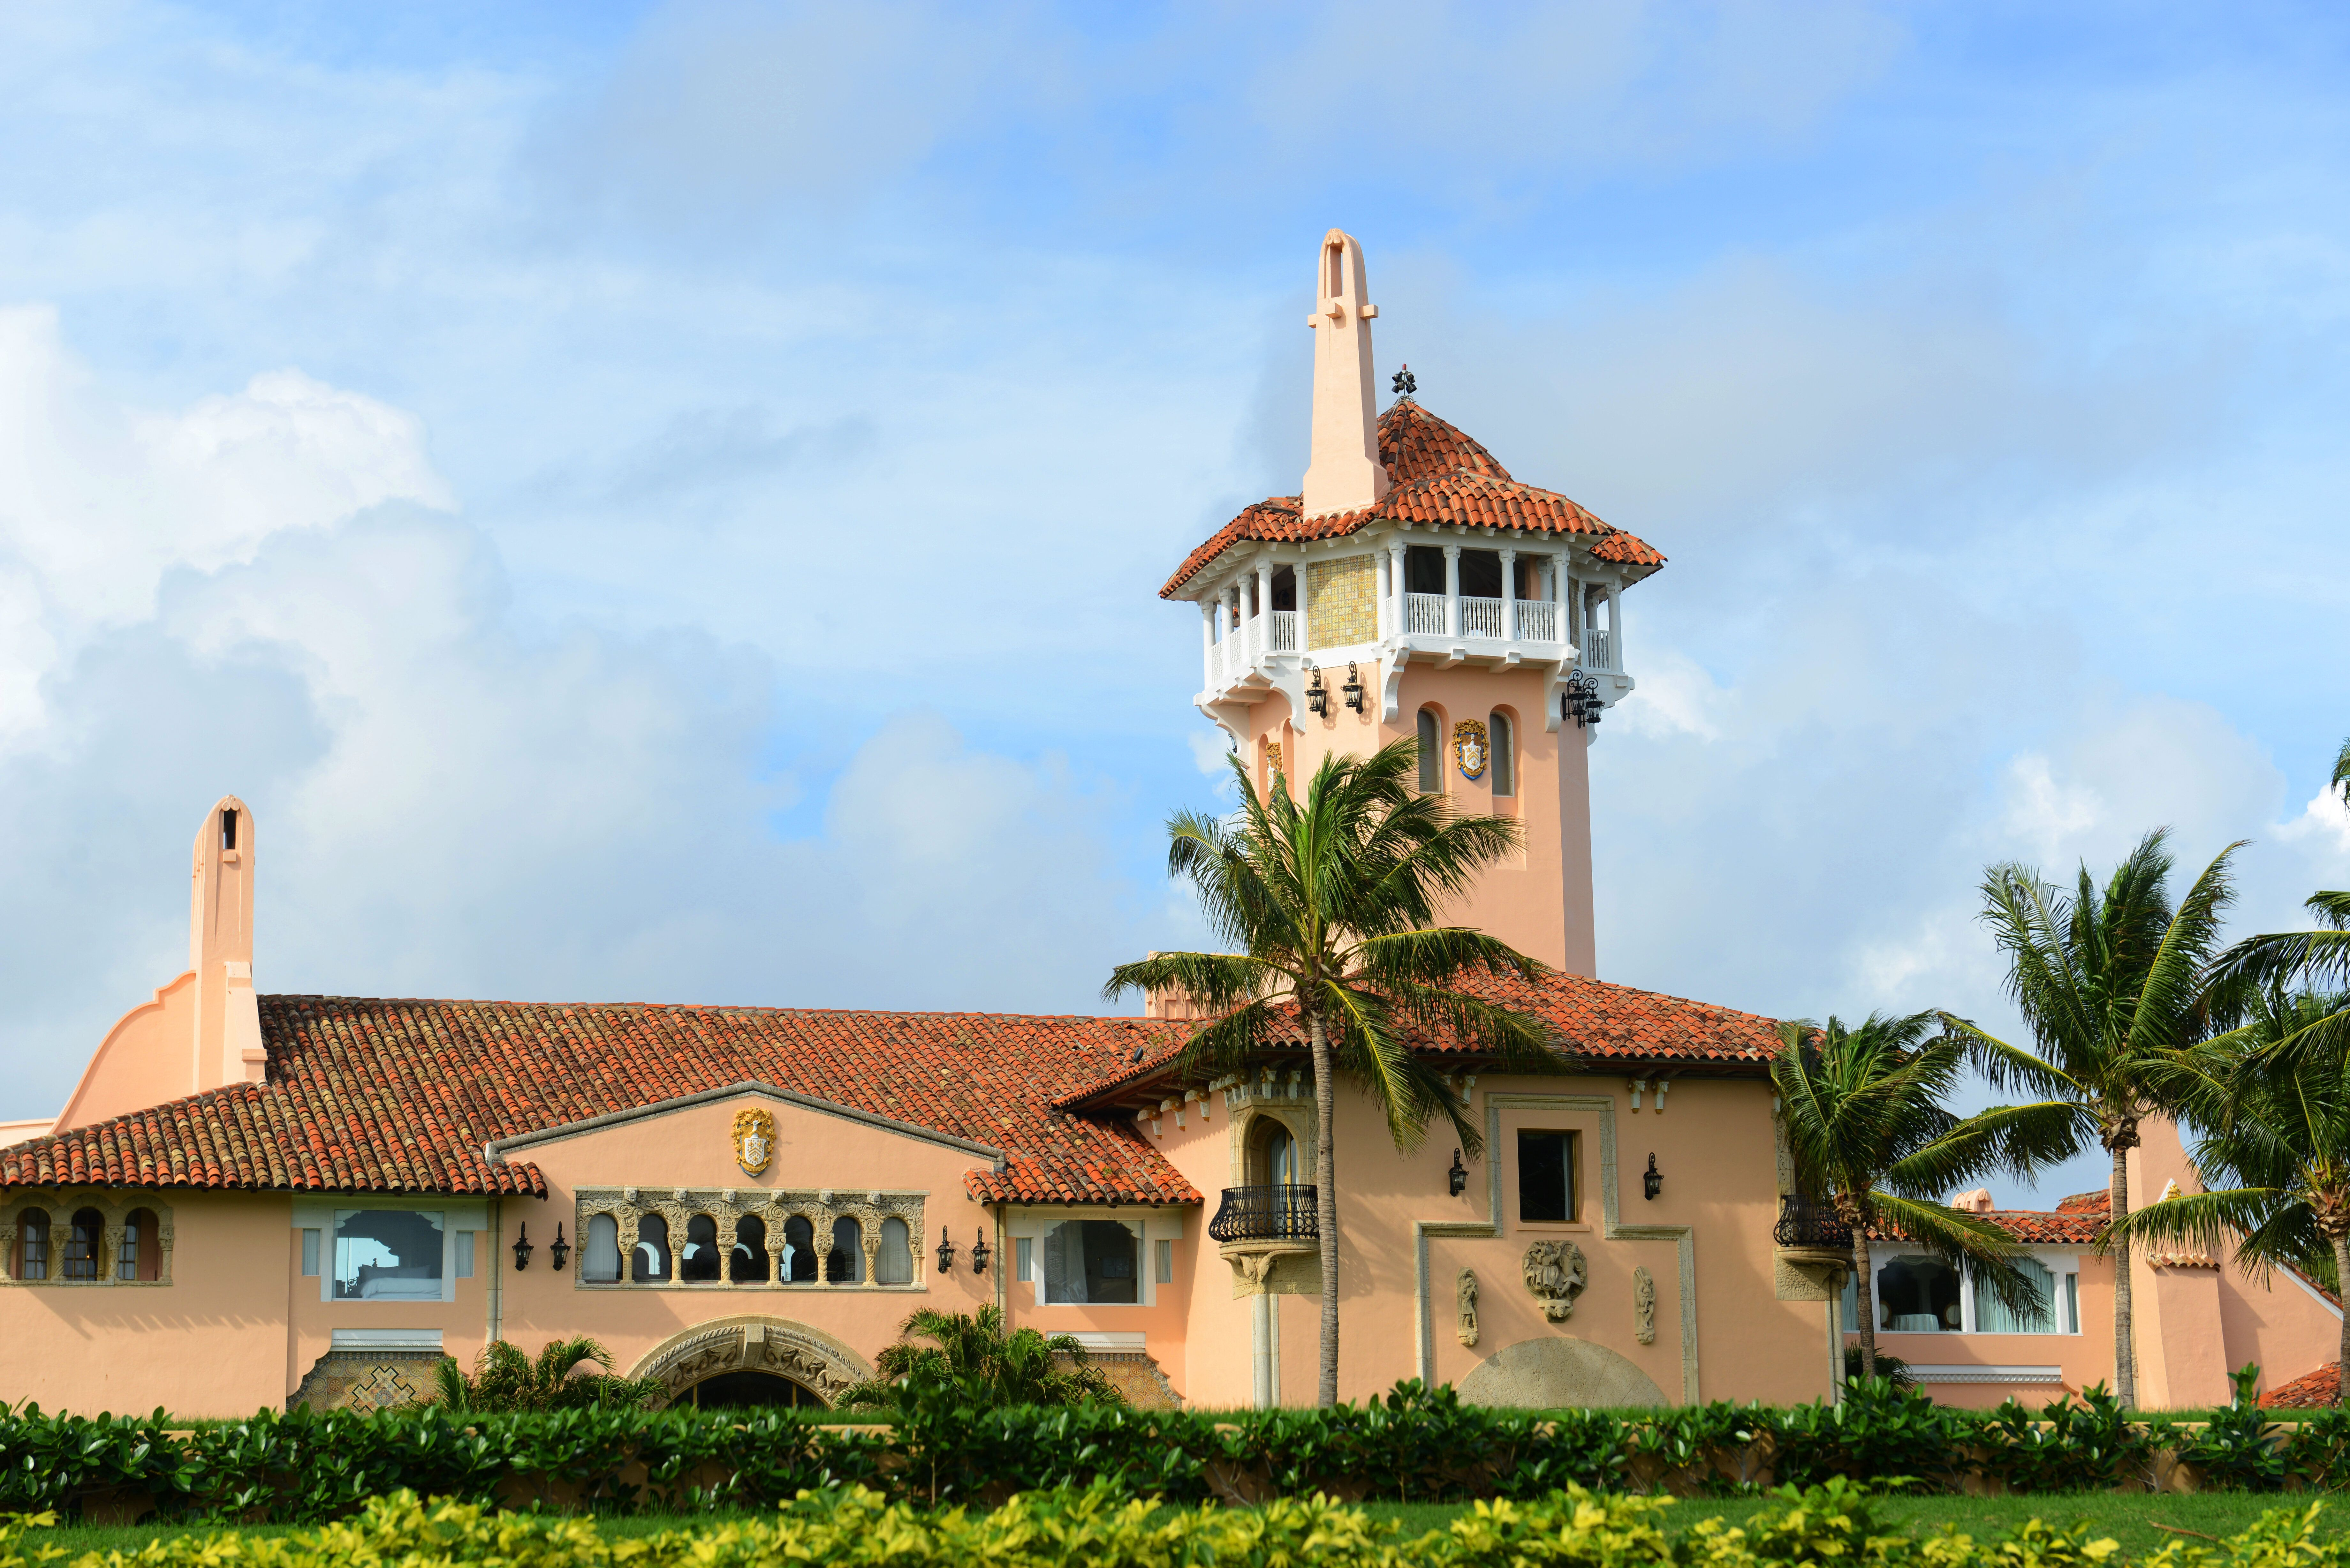 Mar-a-Lago on Palm Beach Island, Palm Beach, Florida, USA. Mar-a-Lago is Palm Beach's grandest mansion with 58 bedrooms and 33 bathrooms. The building was built in 1927 by Joseph Urban and Marion Wyeth.